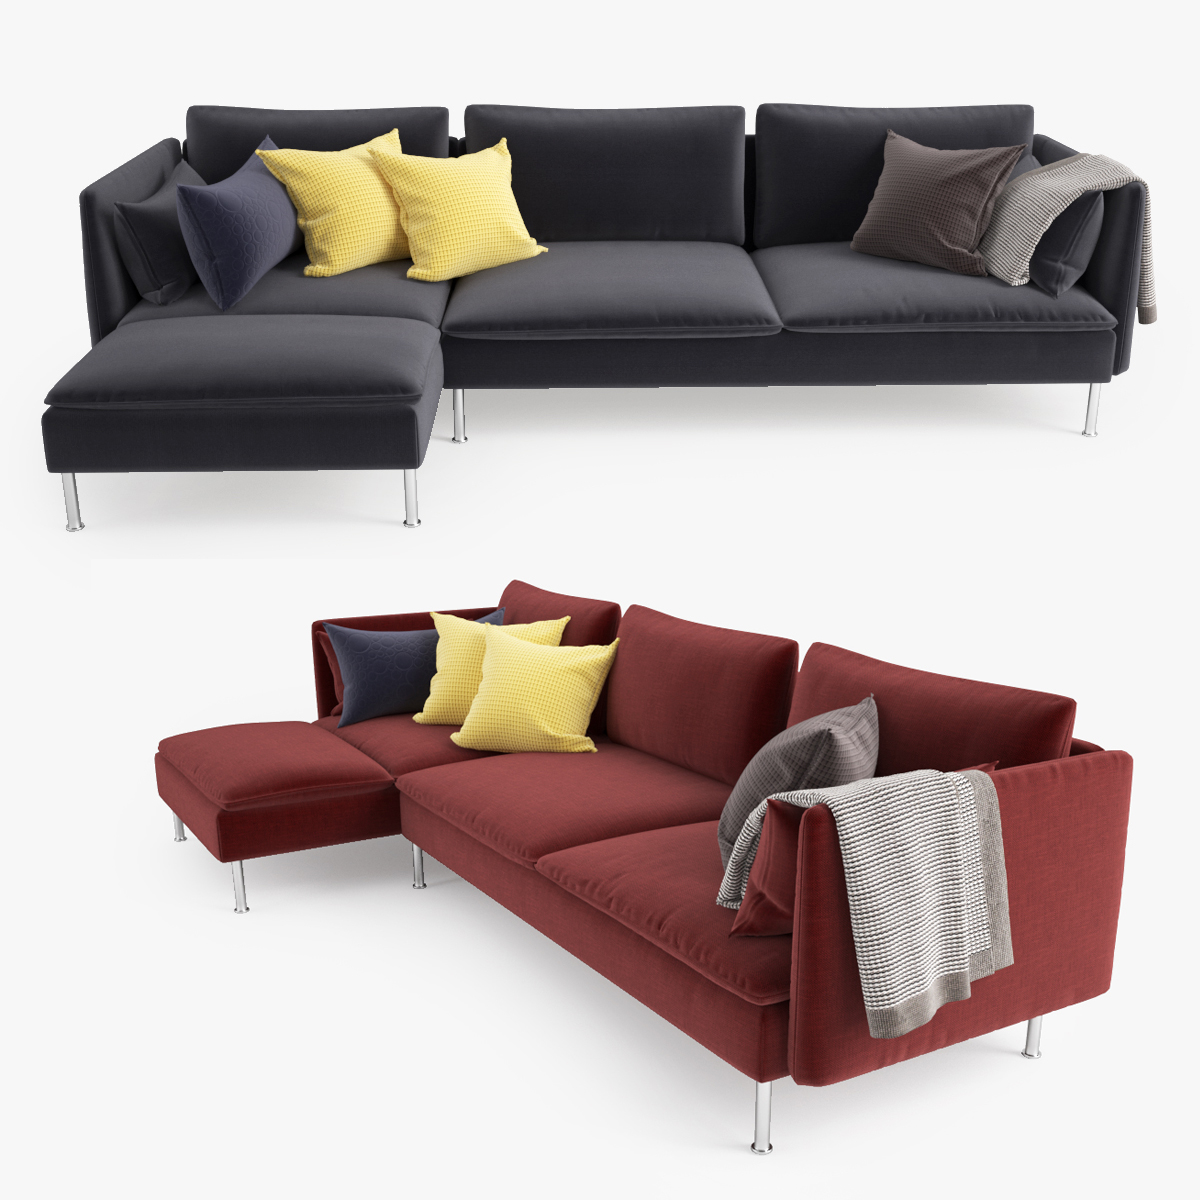 Fabulous Ikea Soderhamn Three Seat Sofa And Chaise Longue Inzonedesignstudio Interior Chair Design Inzonedesignstudiocom